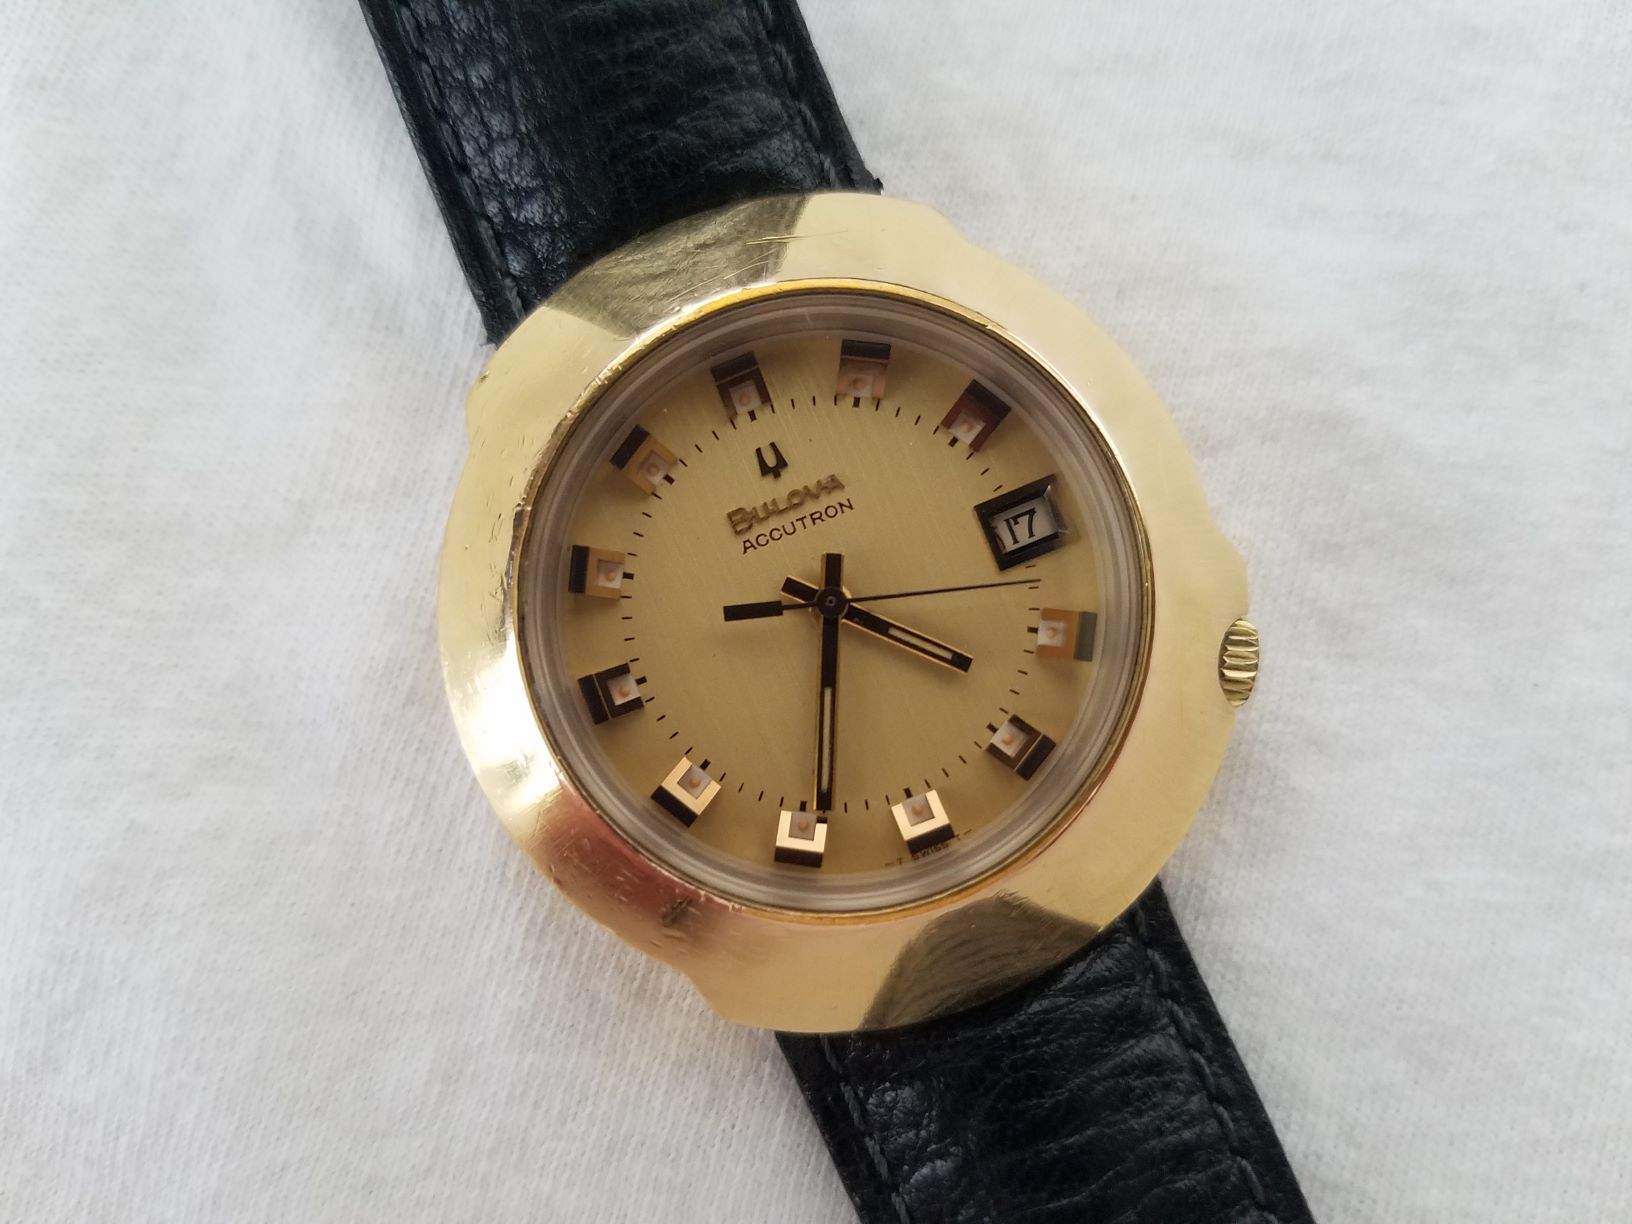 1970 Bulova Accutron Calendar Watch